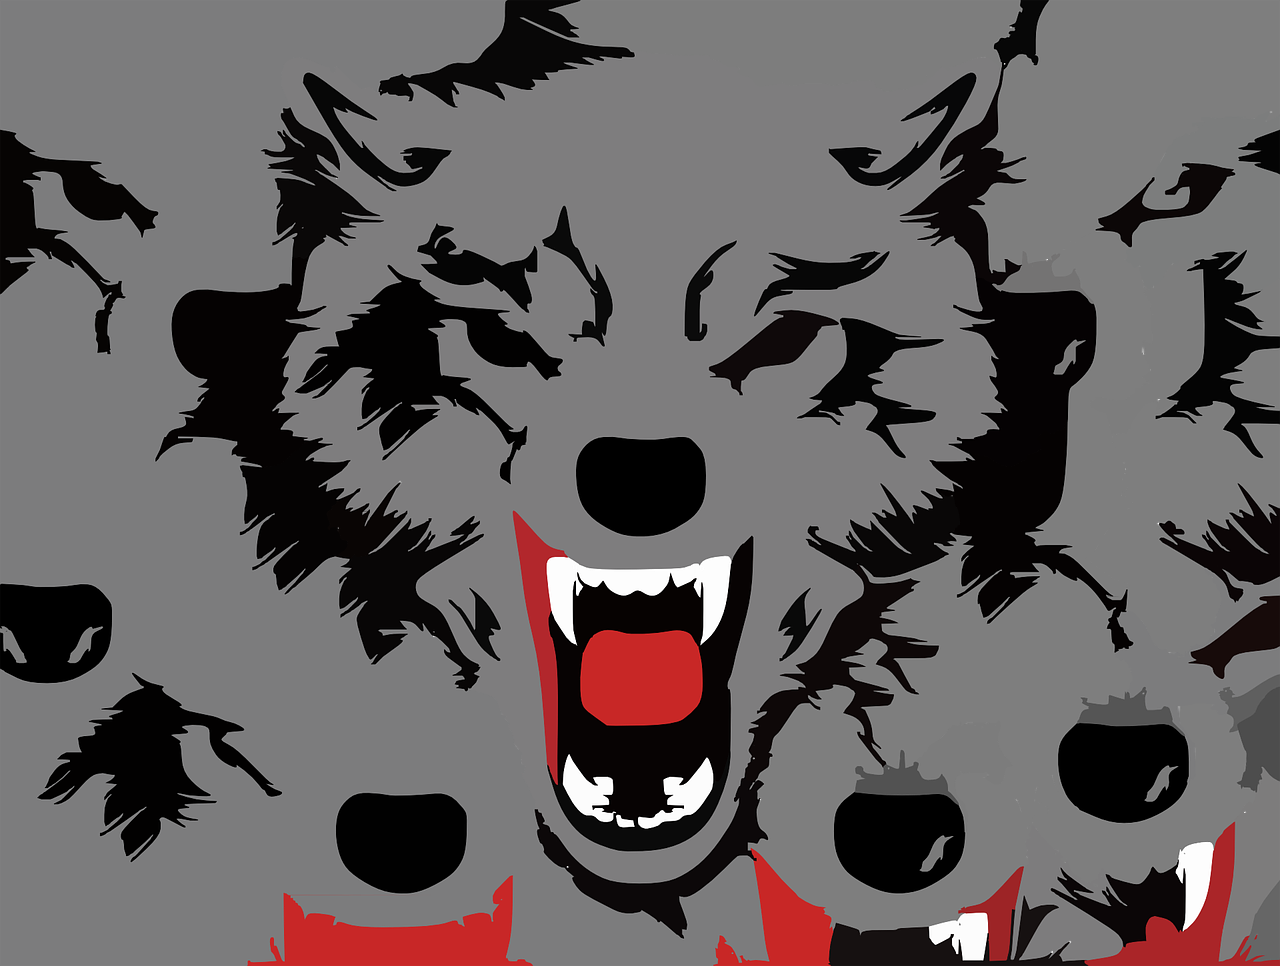 wolf-311213_1280.png